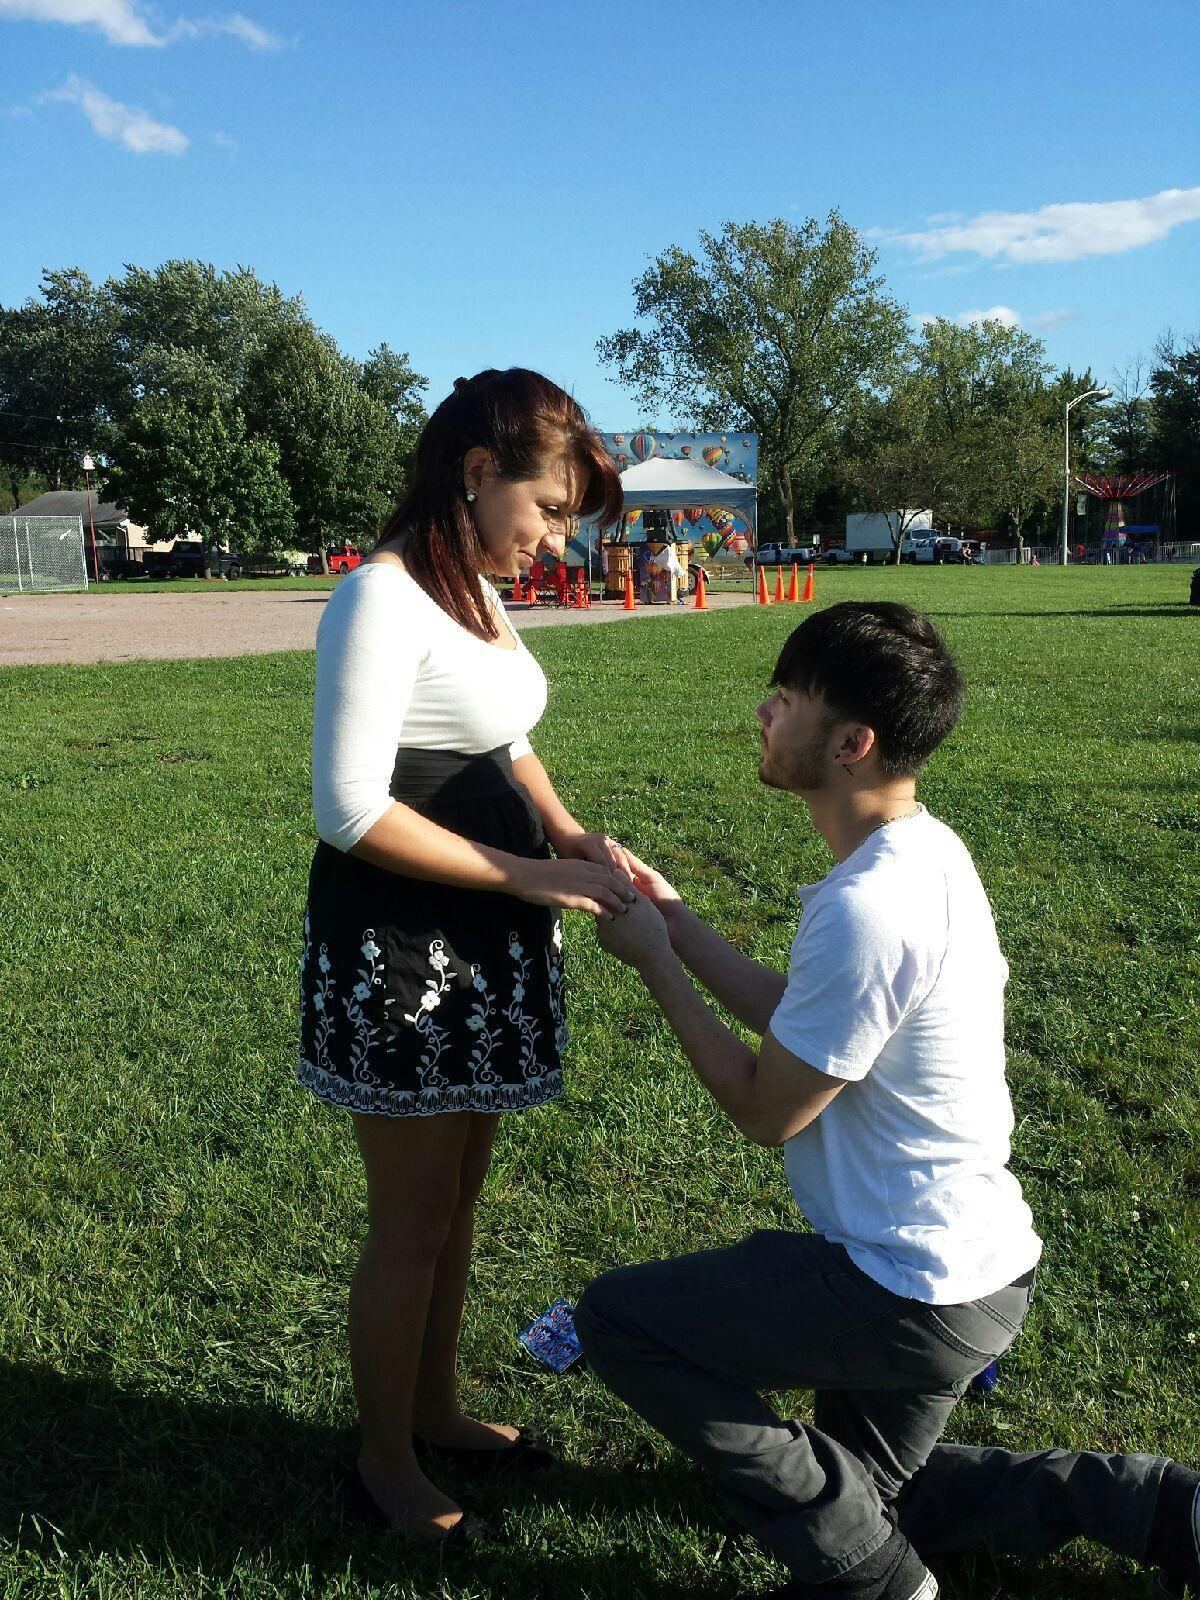 Happily engaged